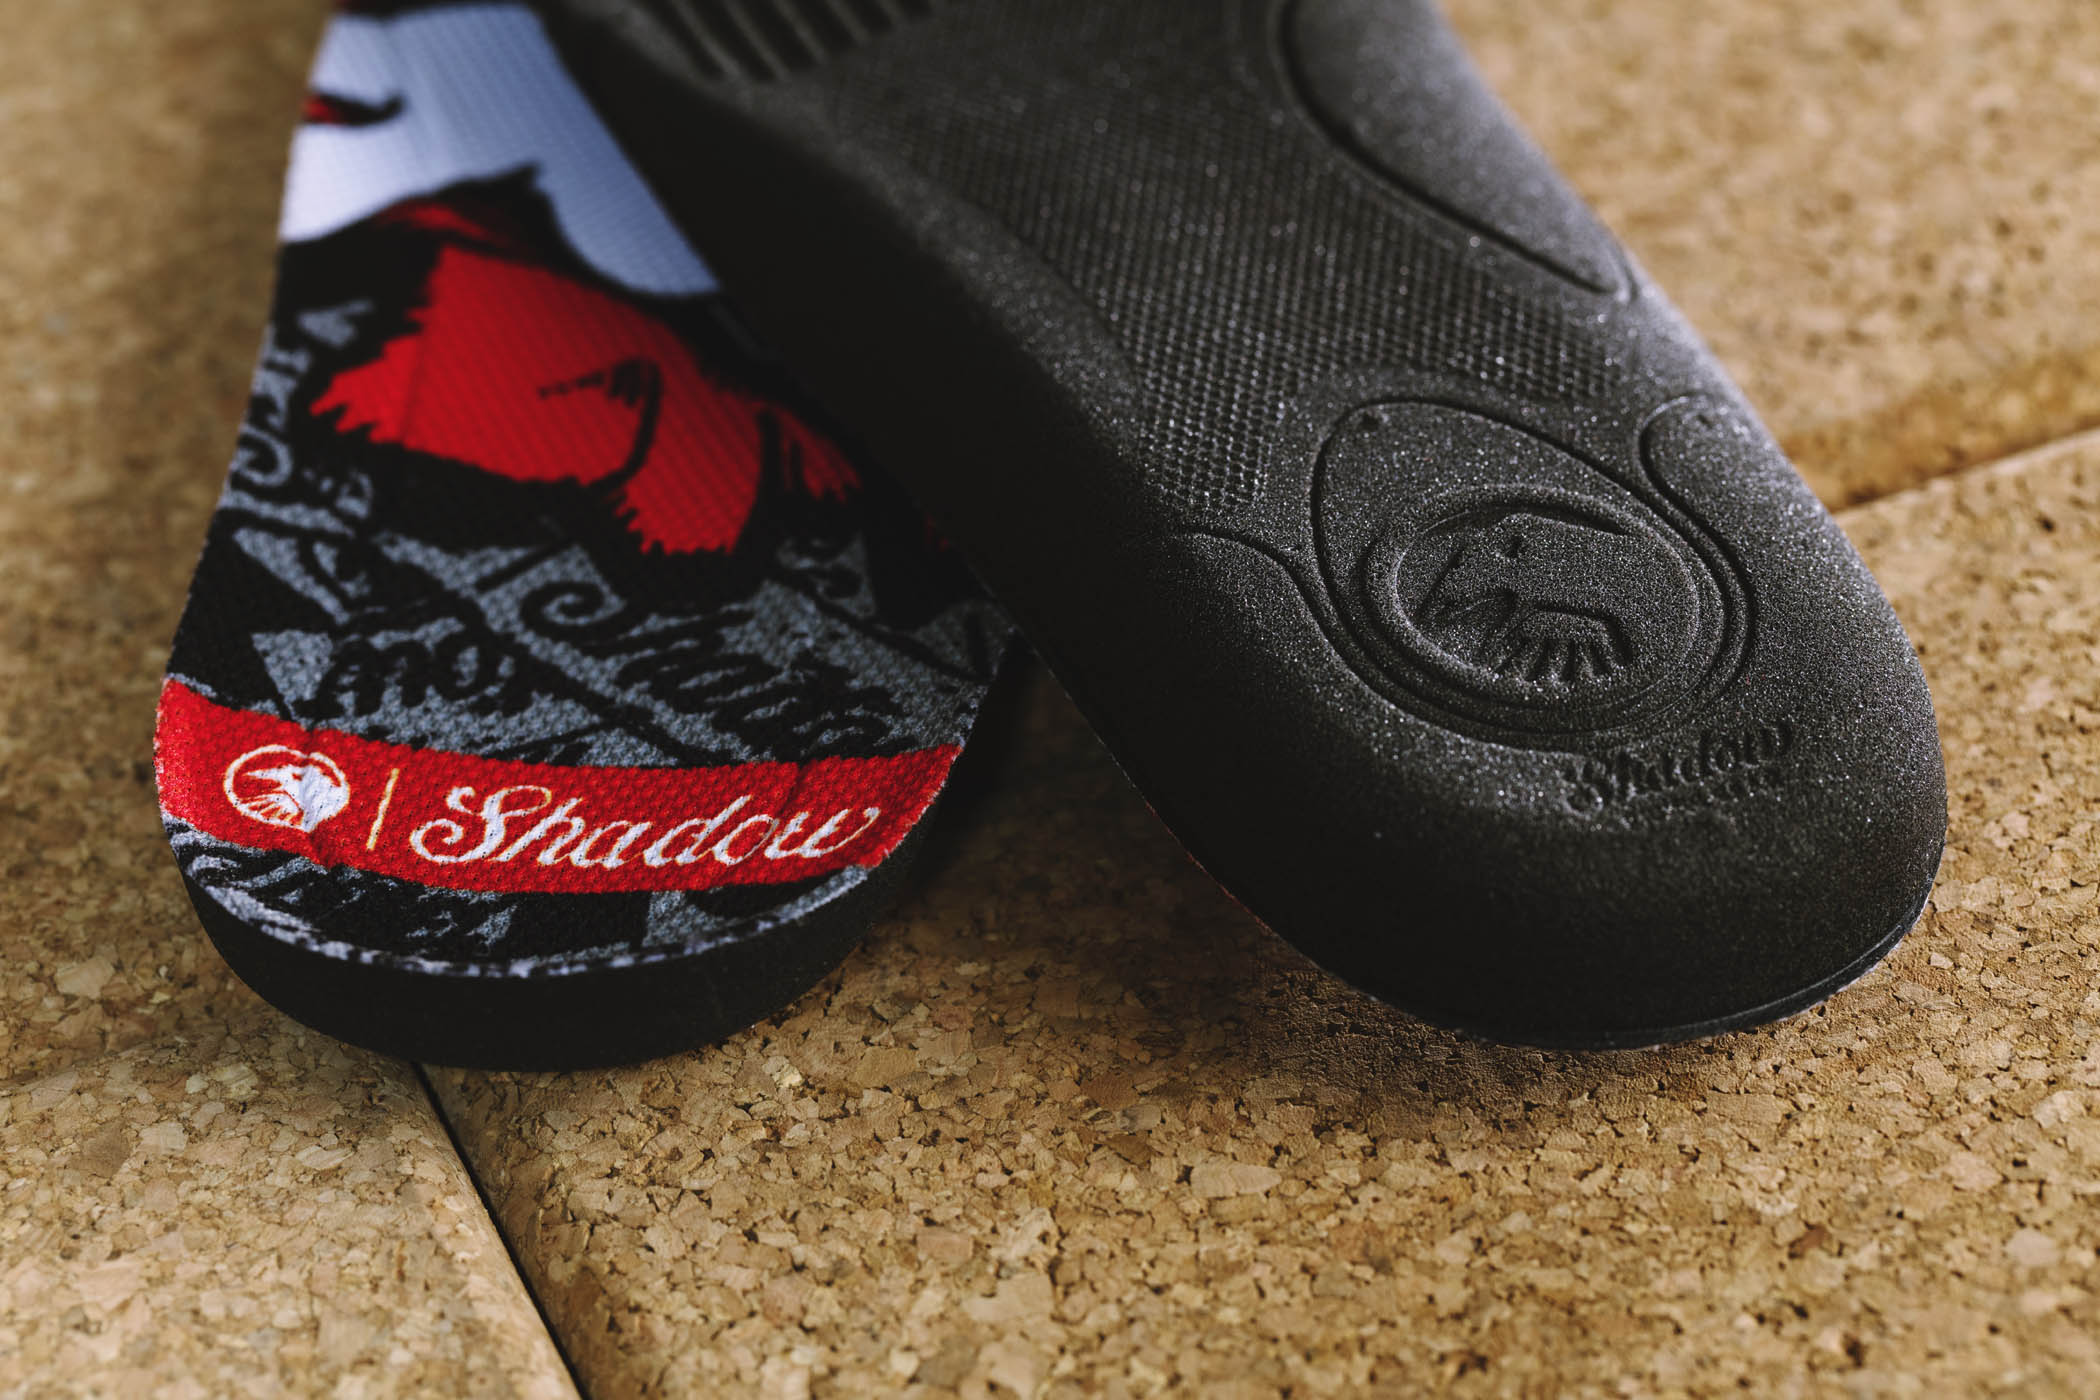 THE SHADOW CONSPIRACY INVISA-LITE PRO INSOLES – REVIEW